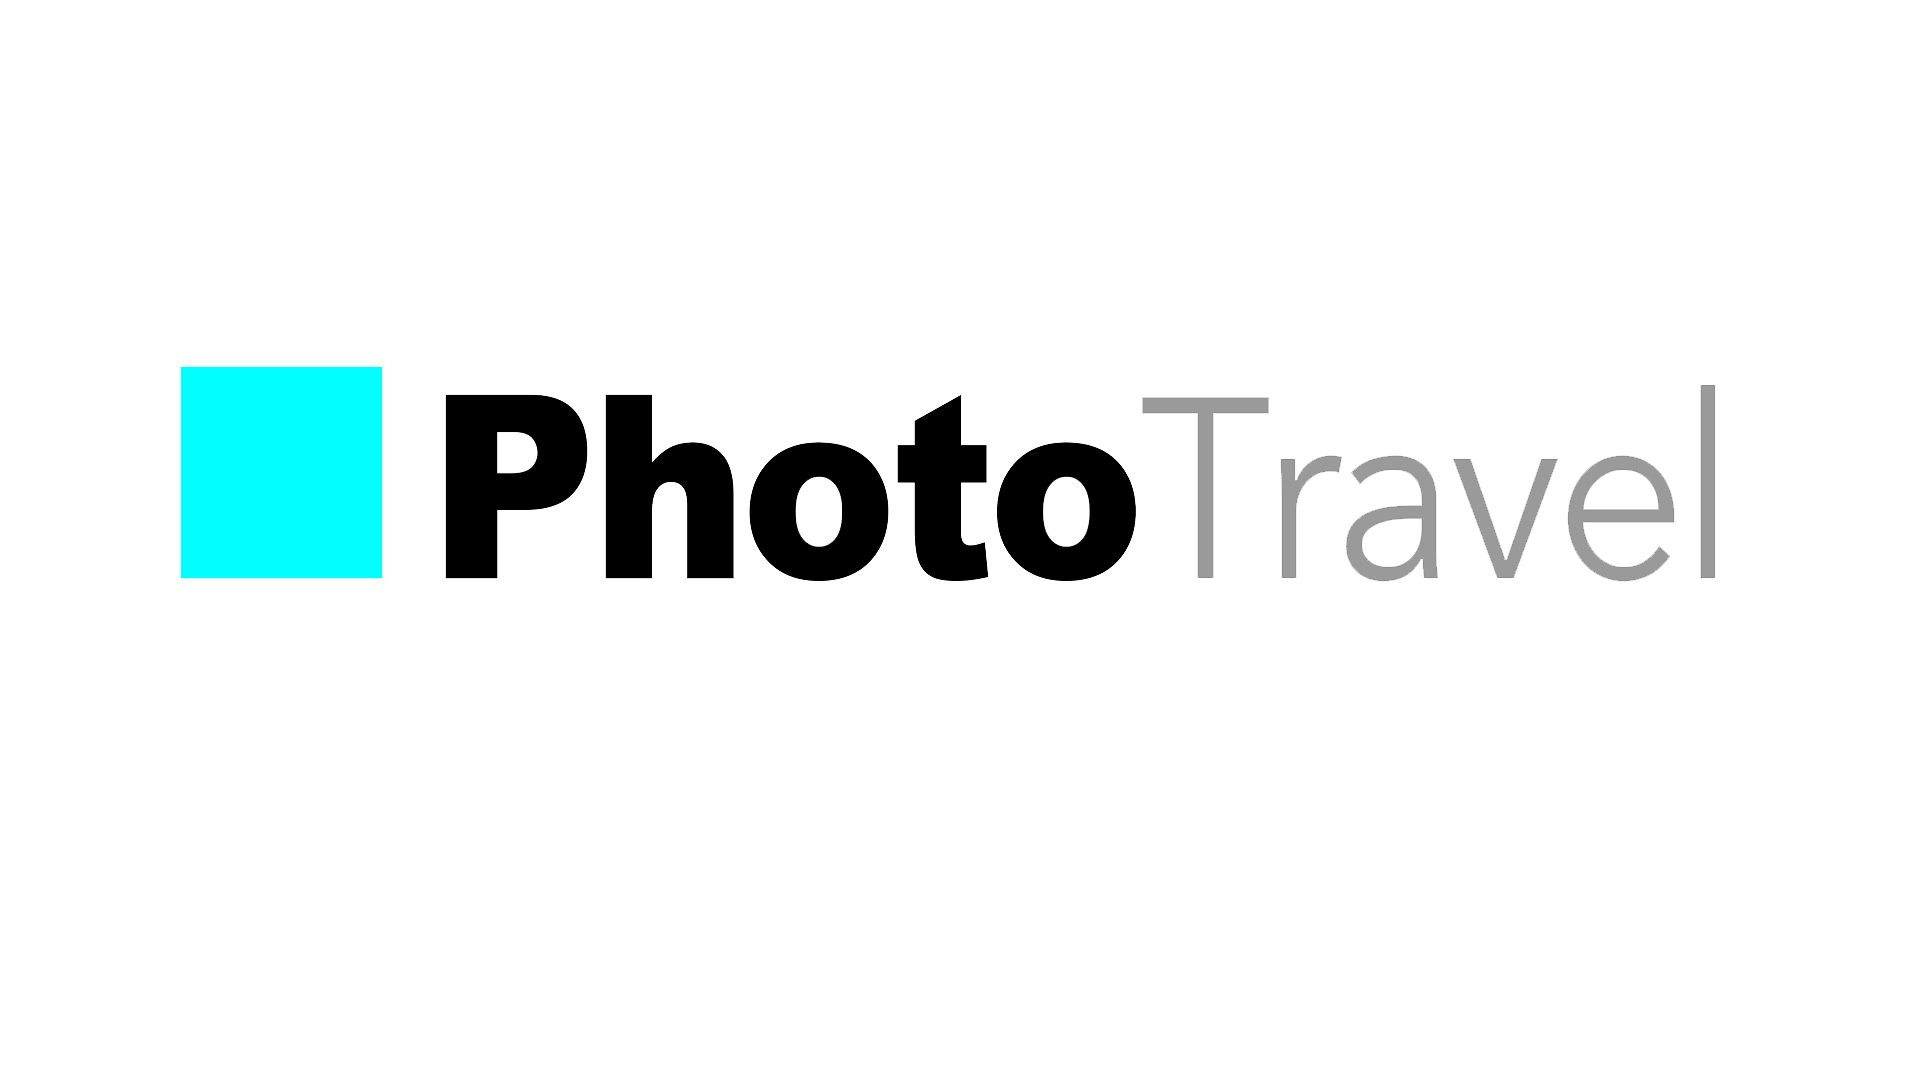 PhotoTravel